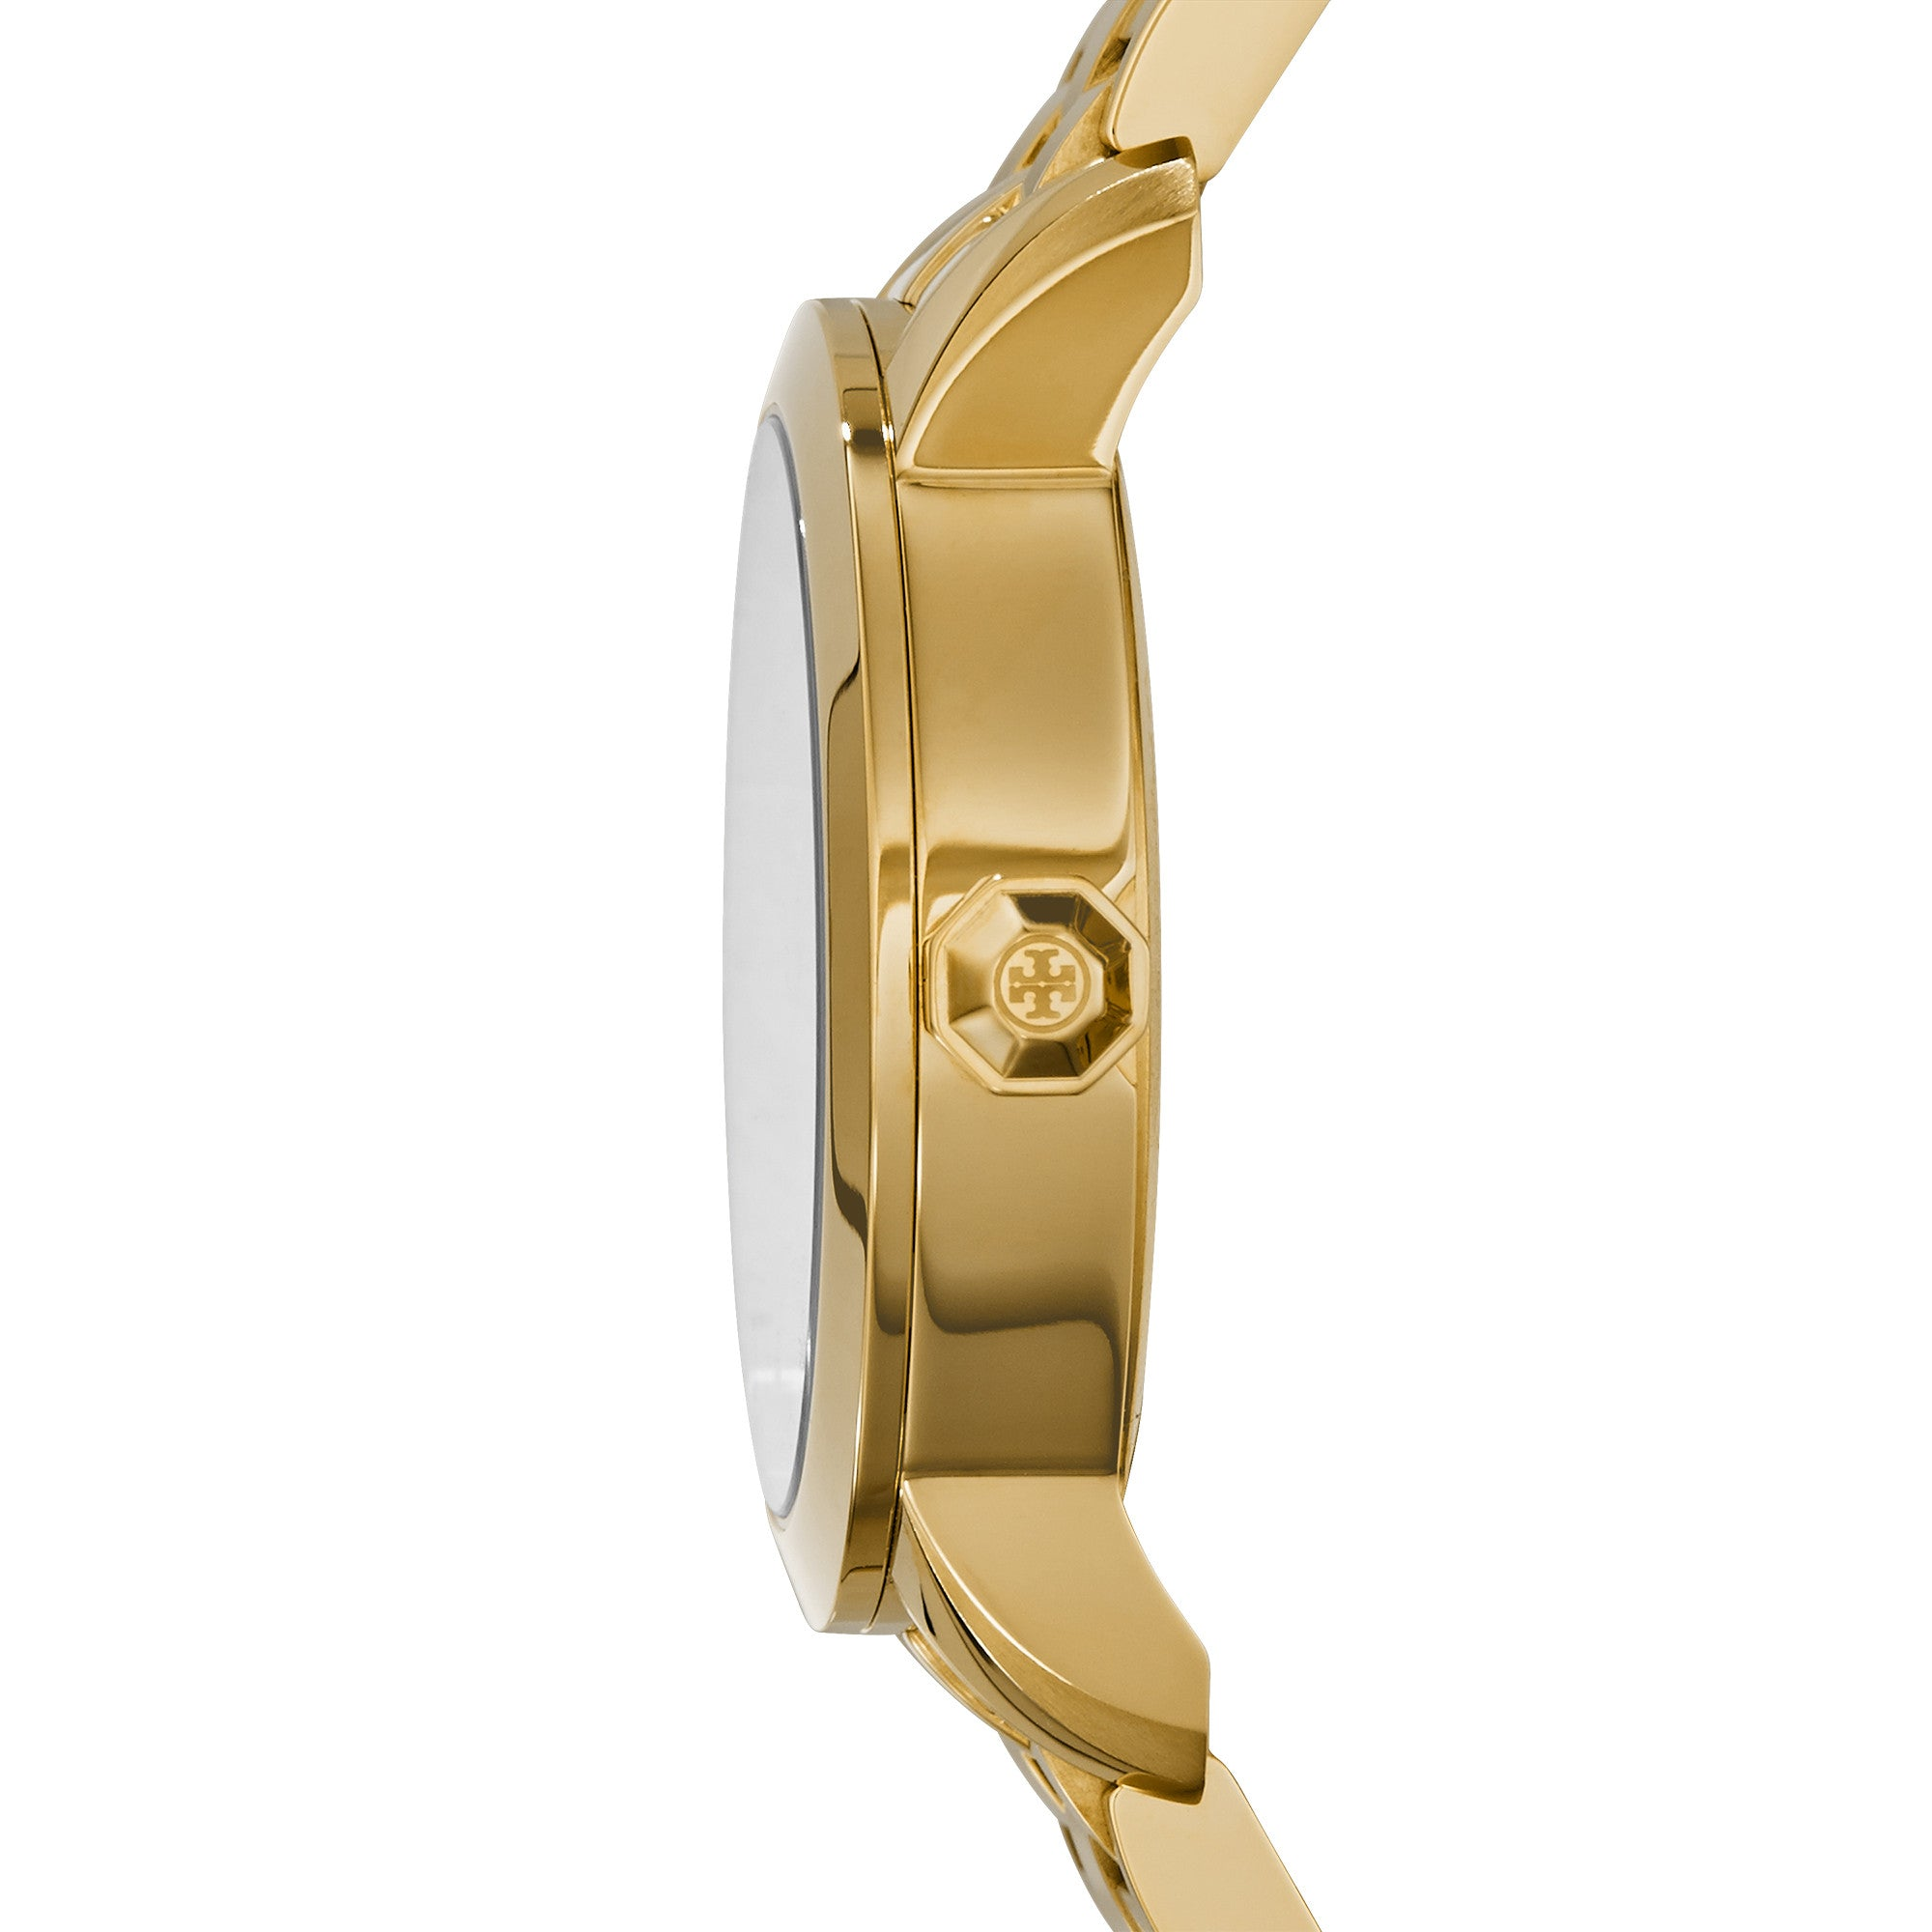 TORY WATCH, GOLD-TONE/IVORY, 37 MM